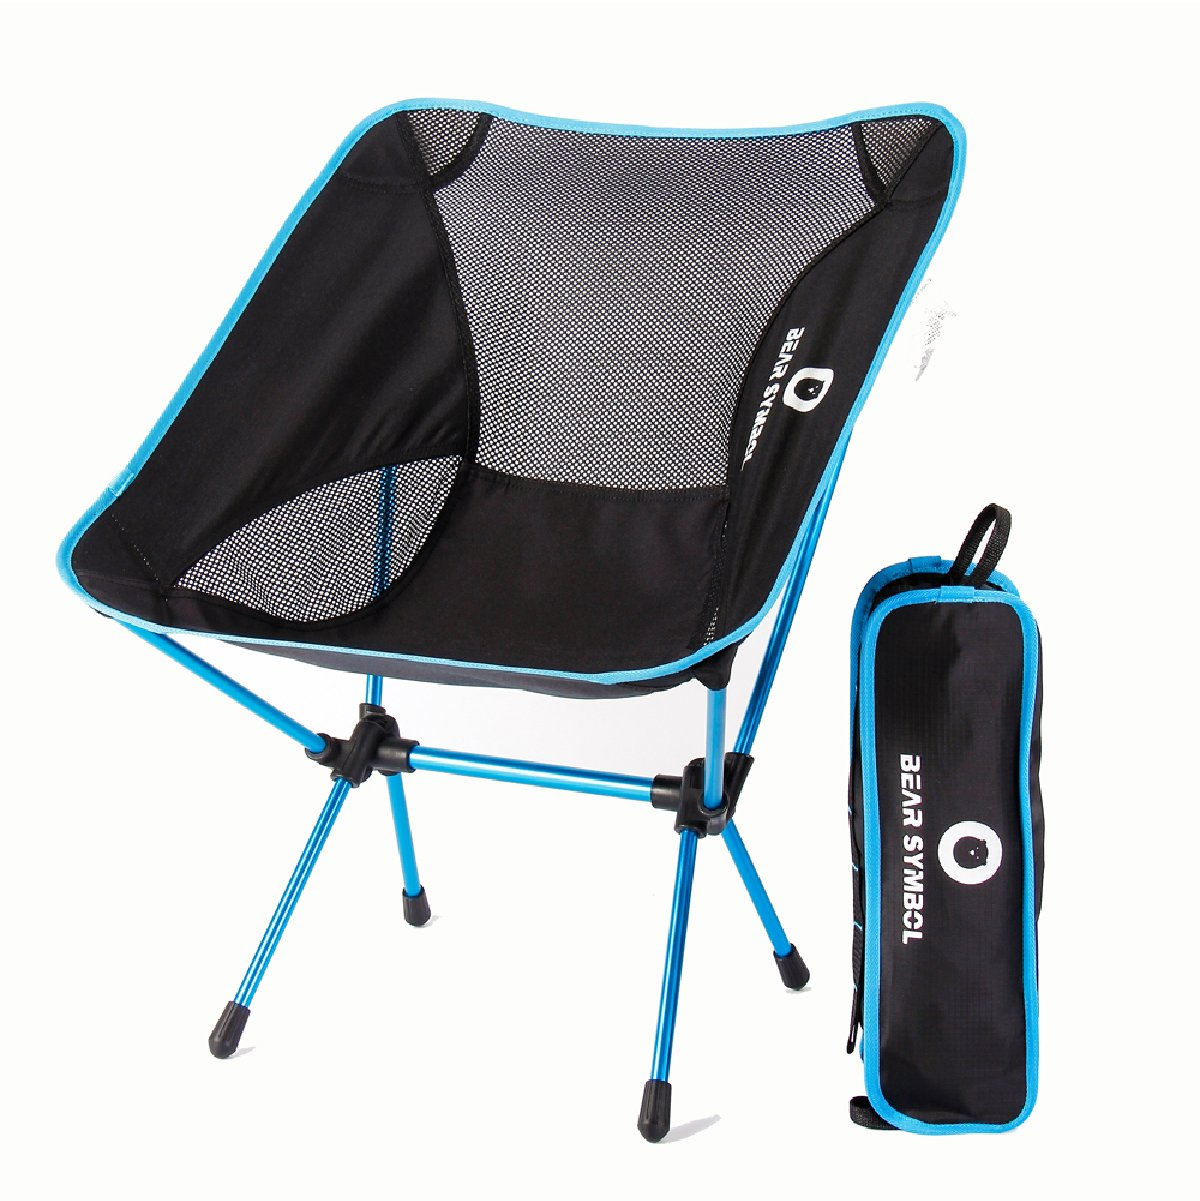 blueee TRIWONDER Folding Camping Chair Lightweight Portable Backpacking Camp Chairs Compact with Carry Bag for Camping, Beach, Backpacking, Hiking